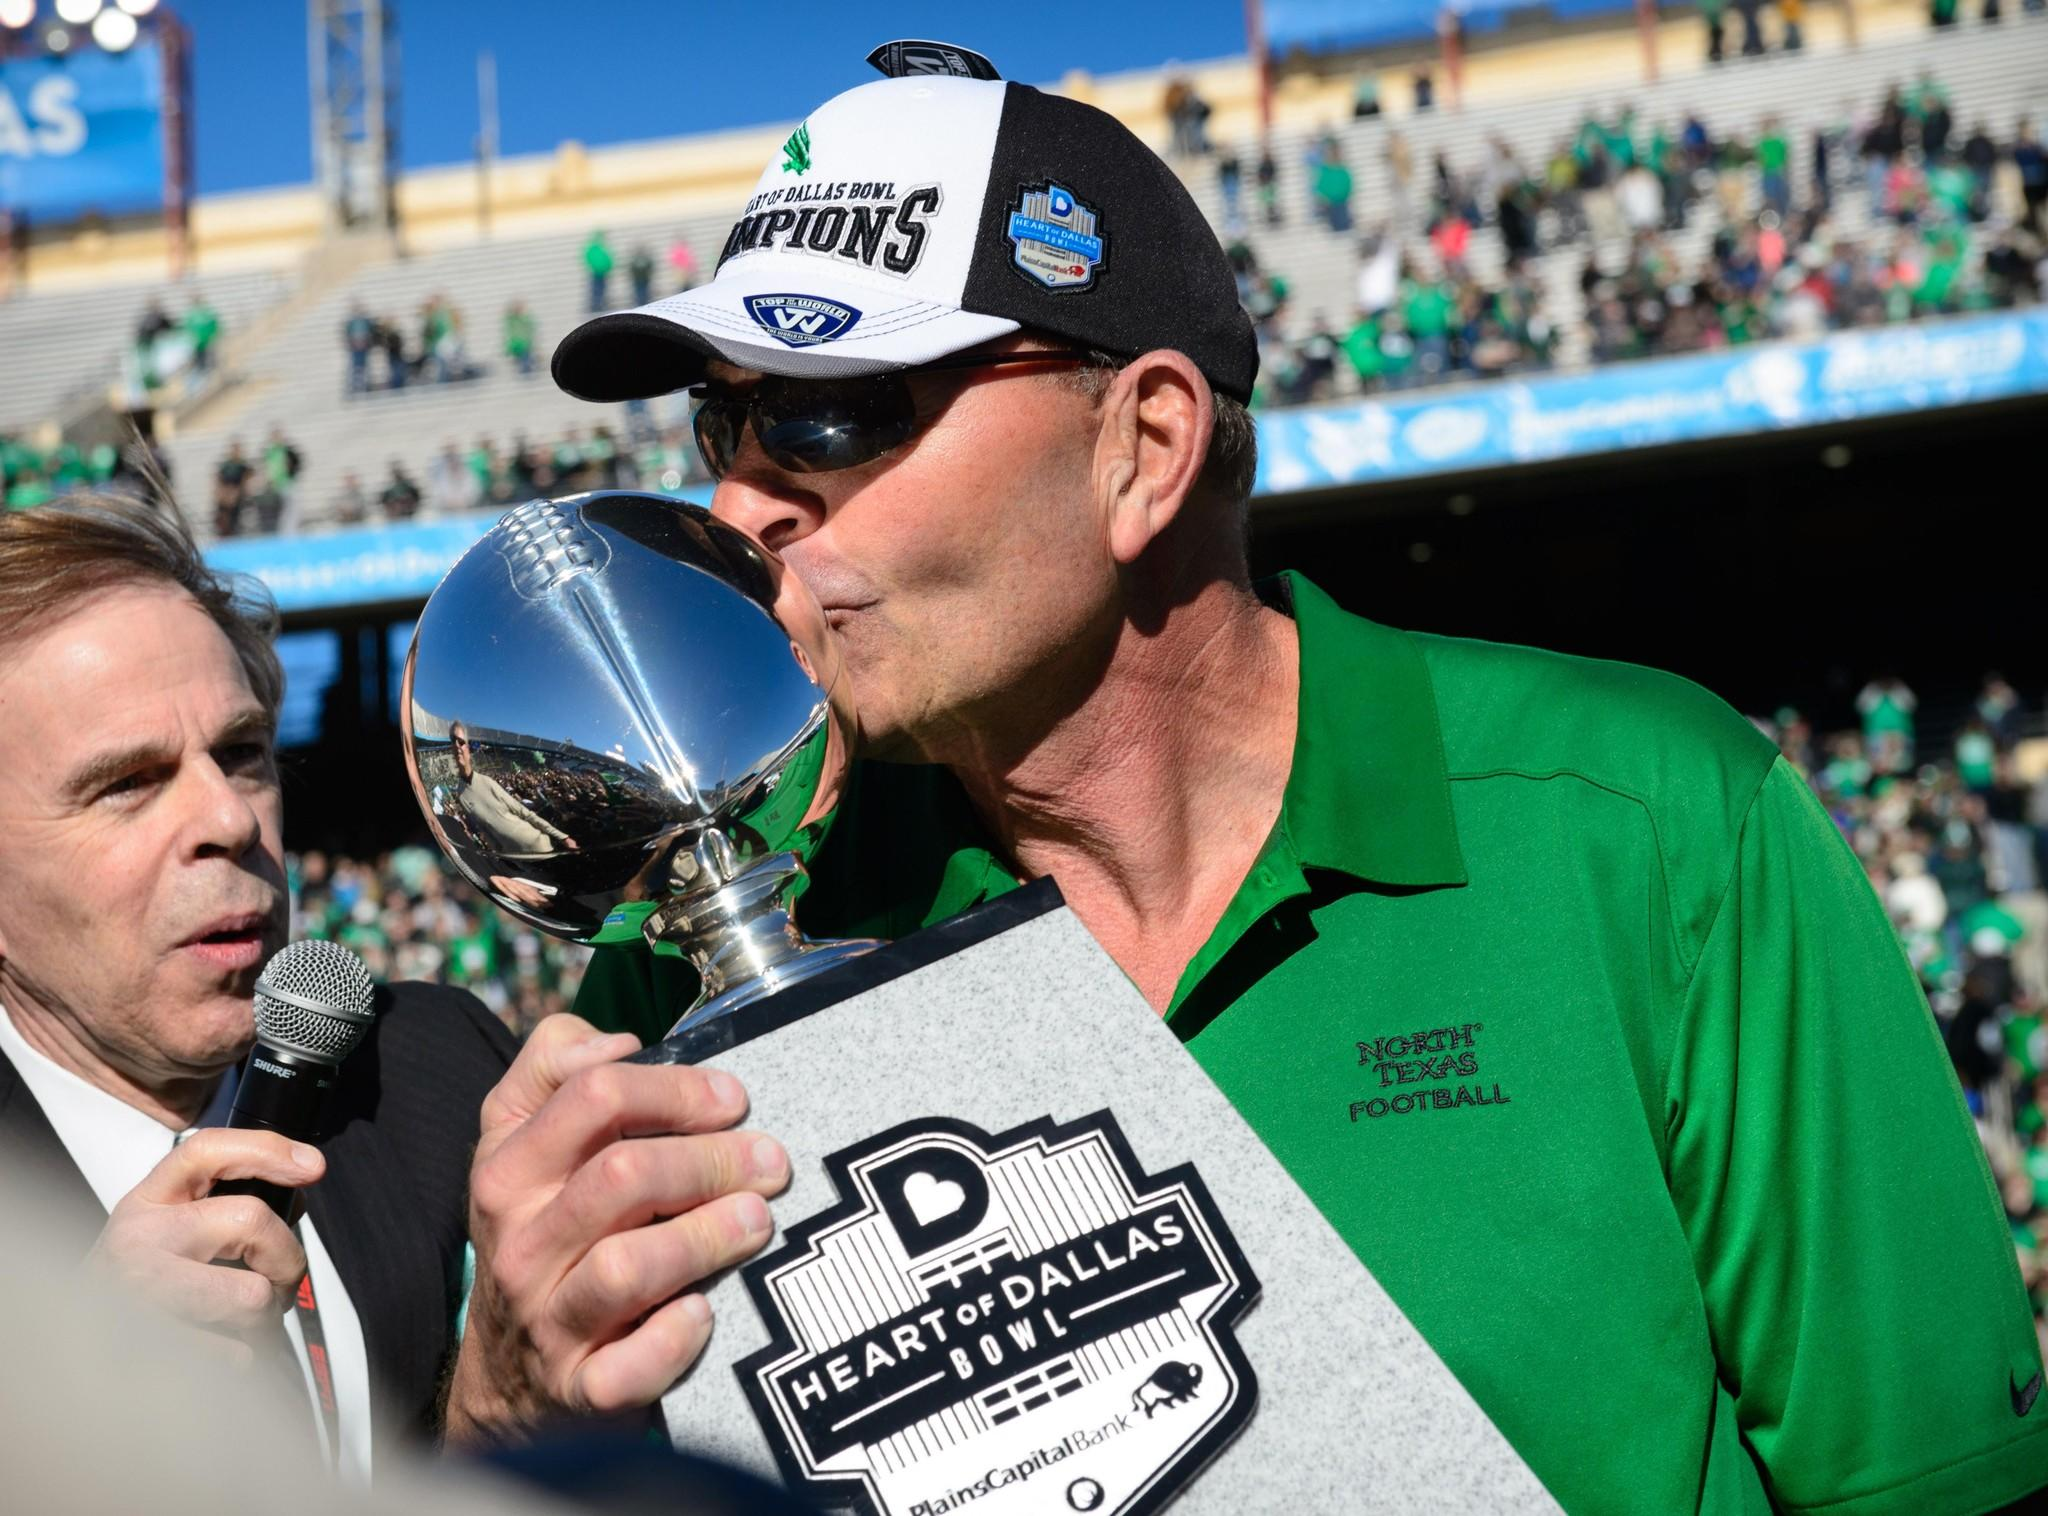 North Texas Mean Green head coach Dan McCarney kisses the Heart of Dallas trophy after the win over the UNLV Rebels at the Cotton Bowl Stadium.